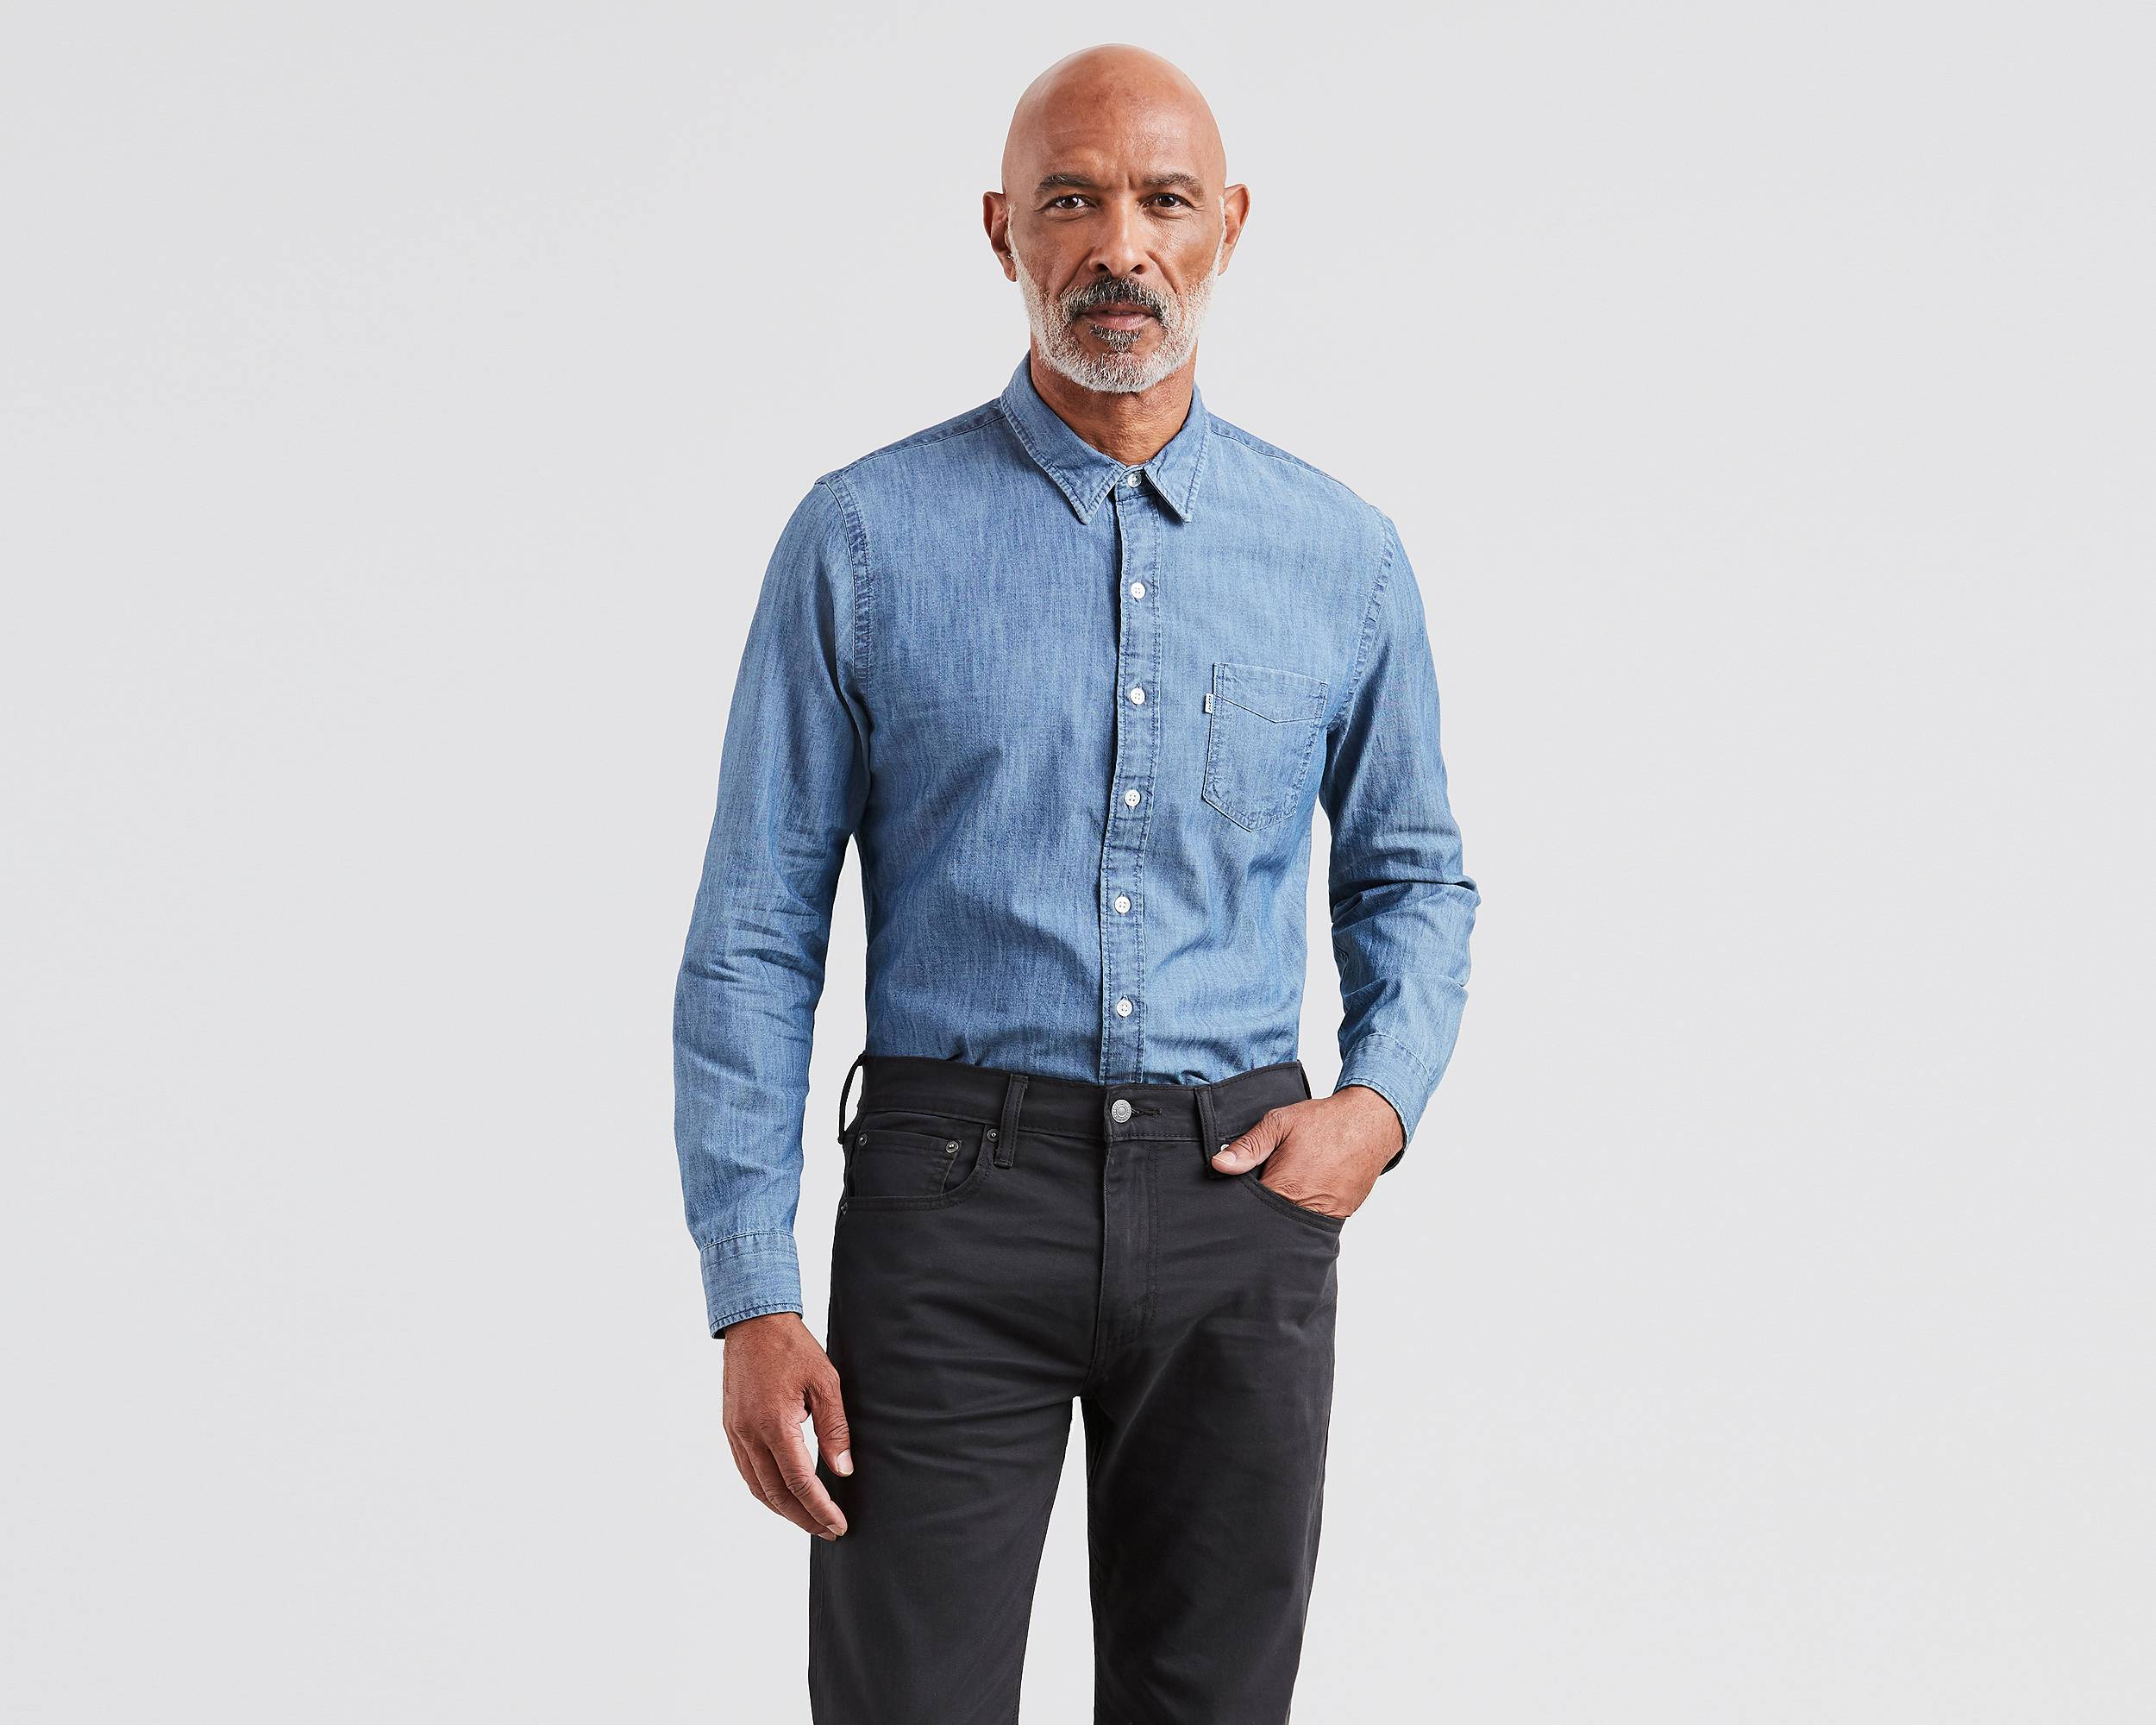 Men's Shirts - Shop Men's Denim Shirts | Levi's®